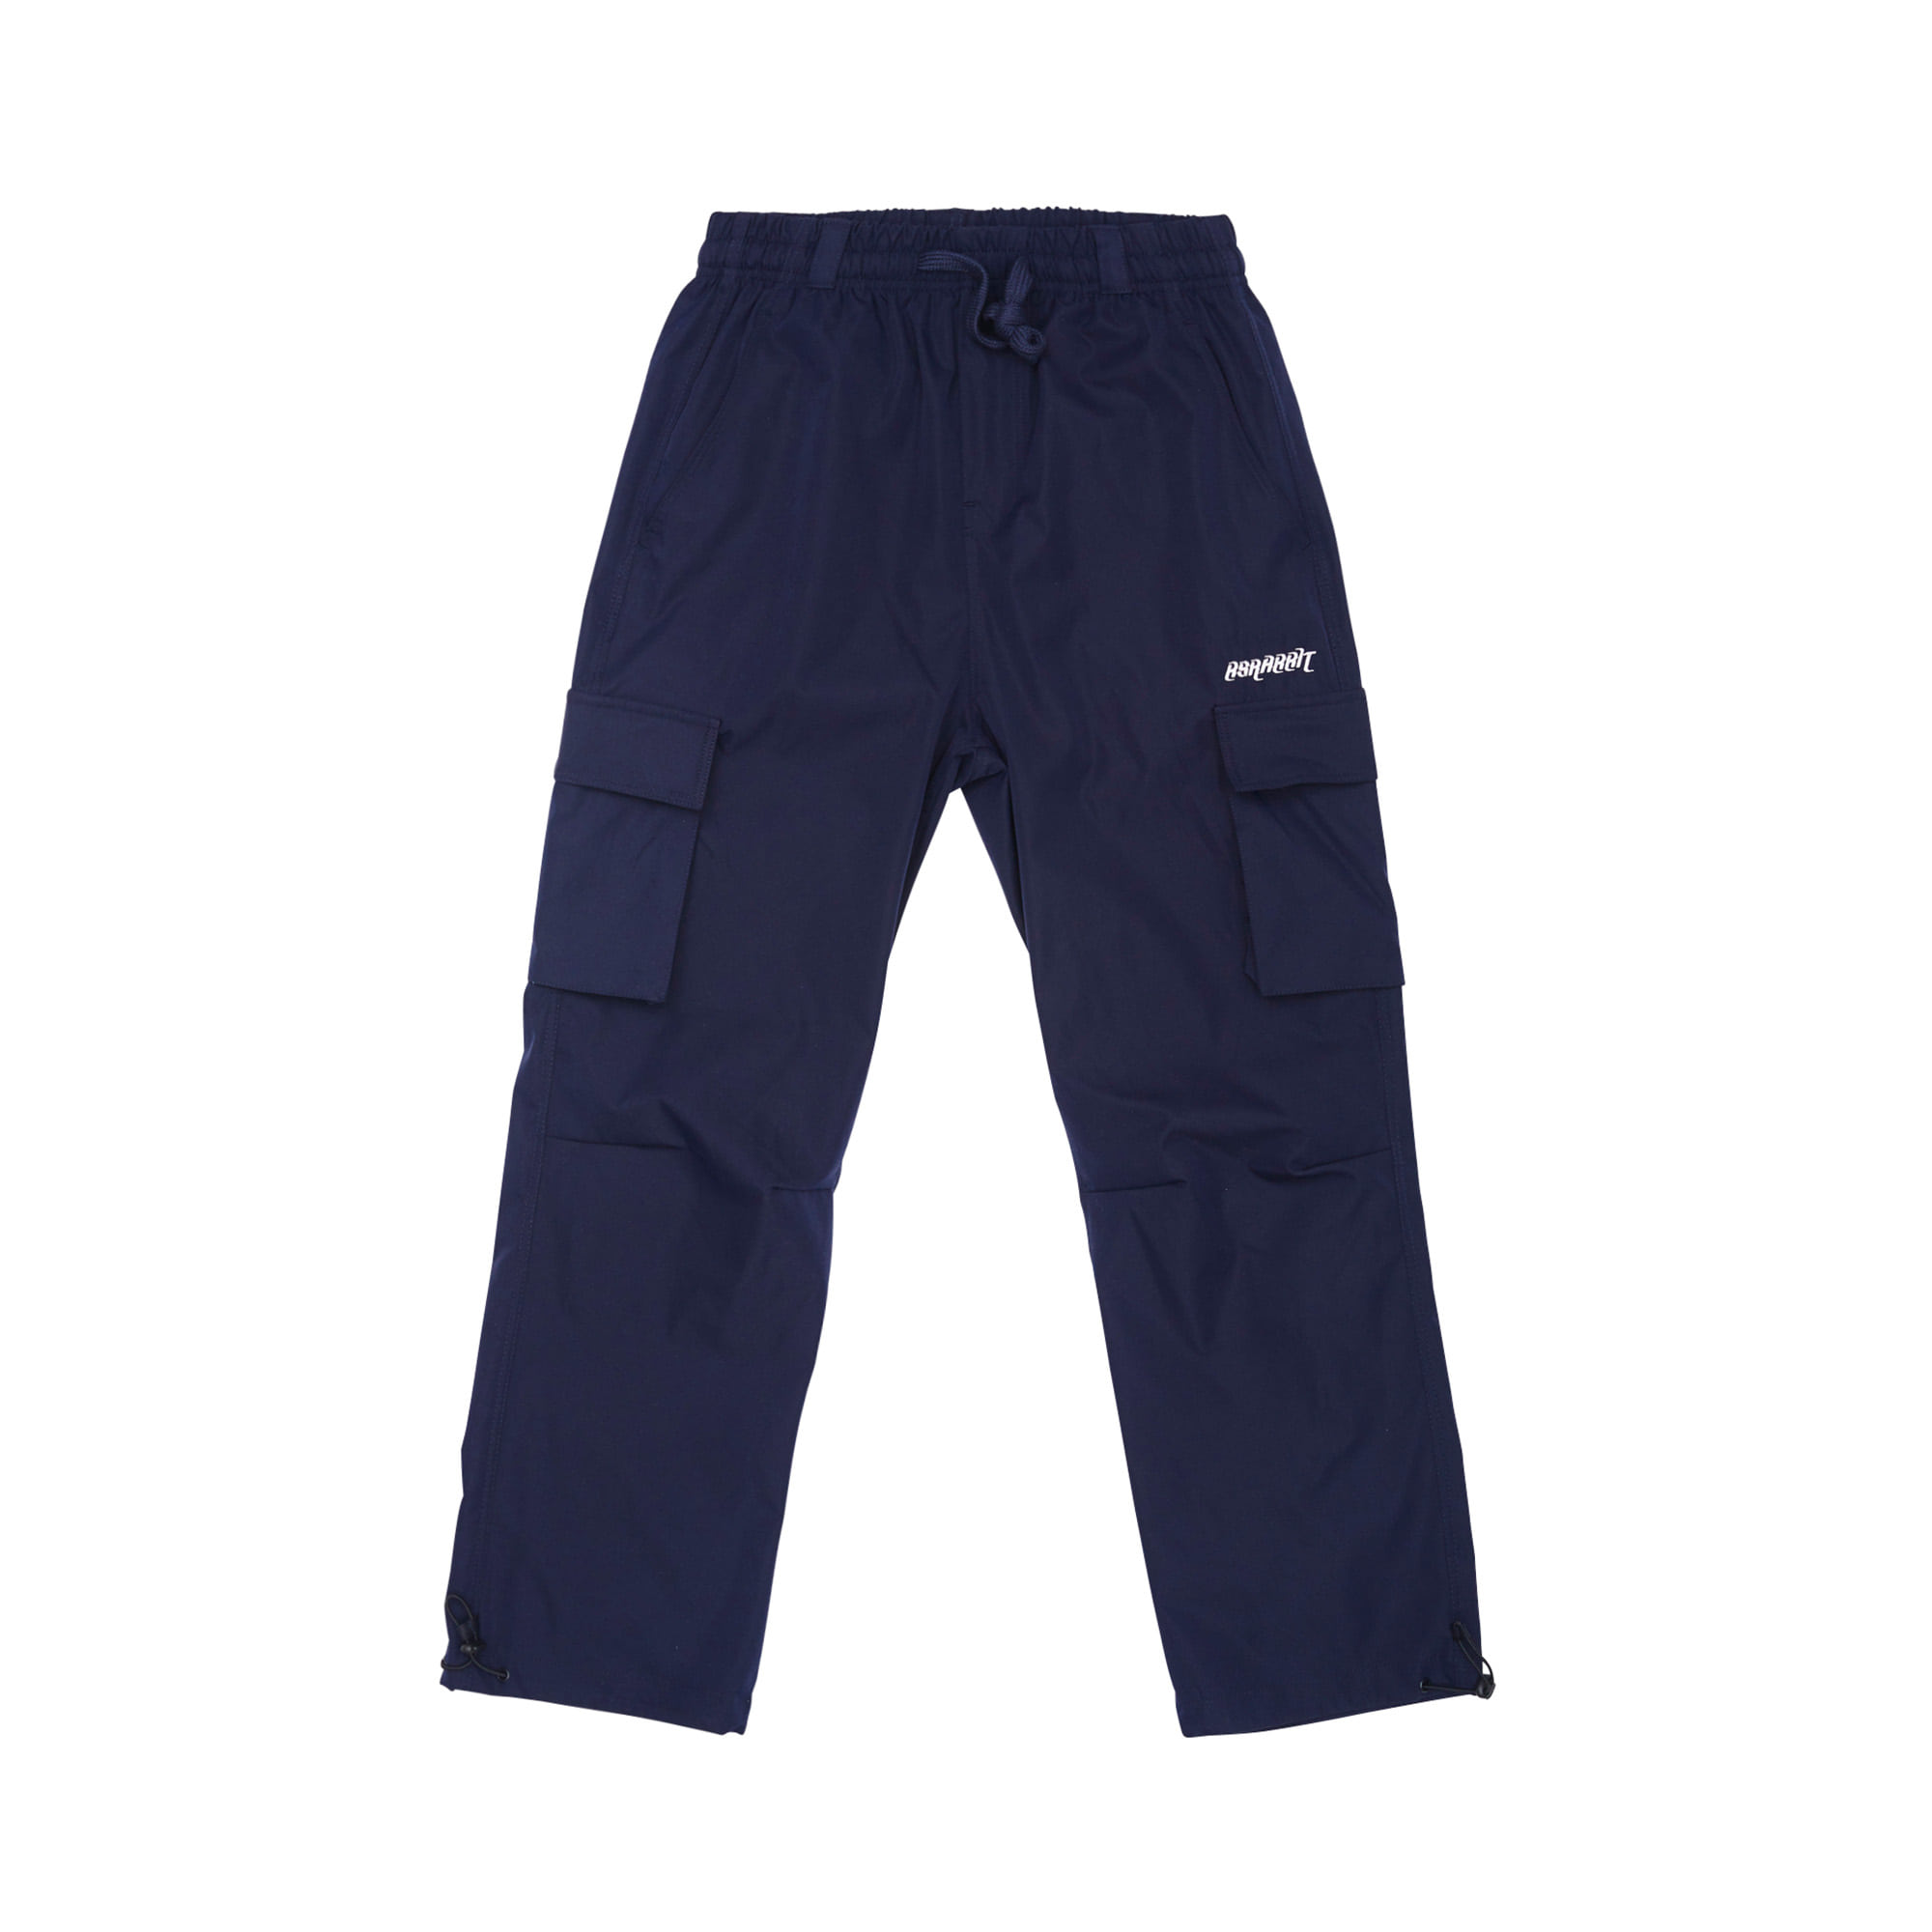 BSRBT STRETCH TWILL CARGO TRACK PANTS NAVY